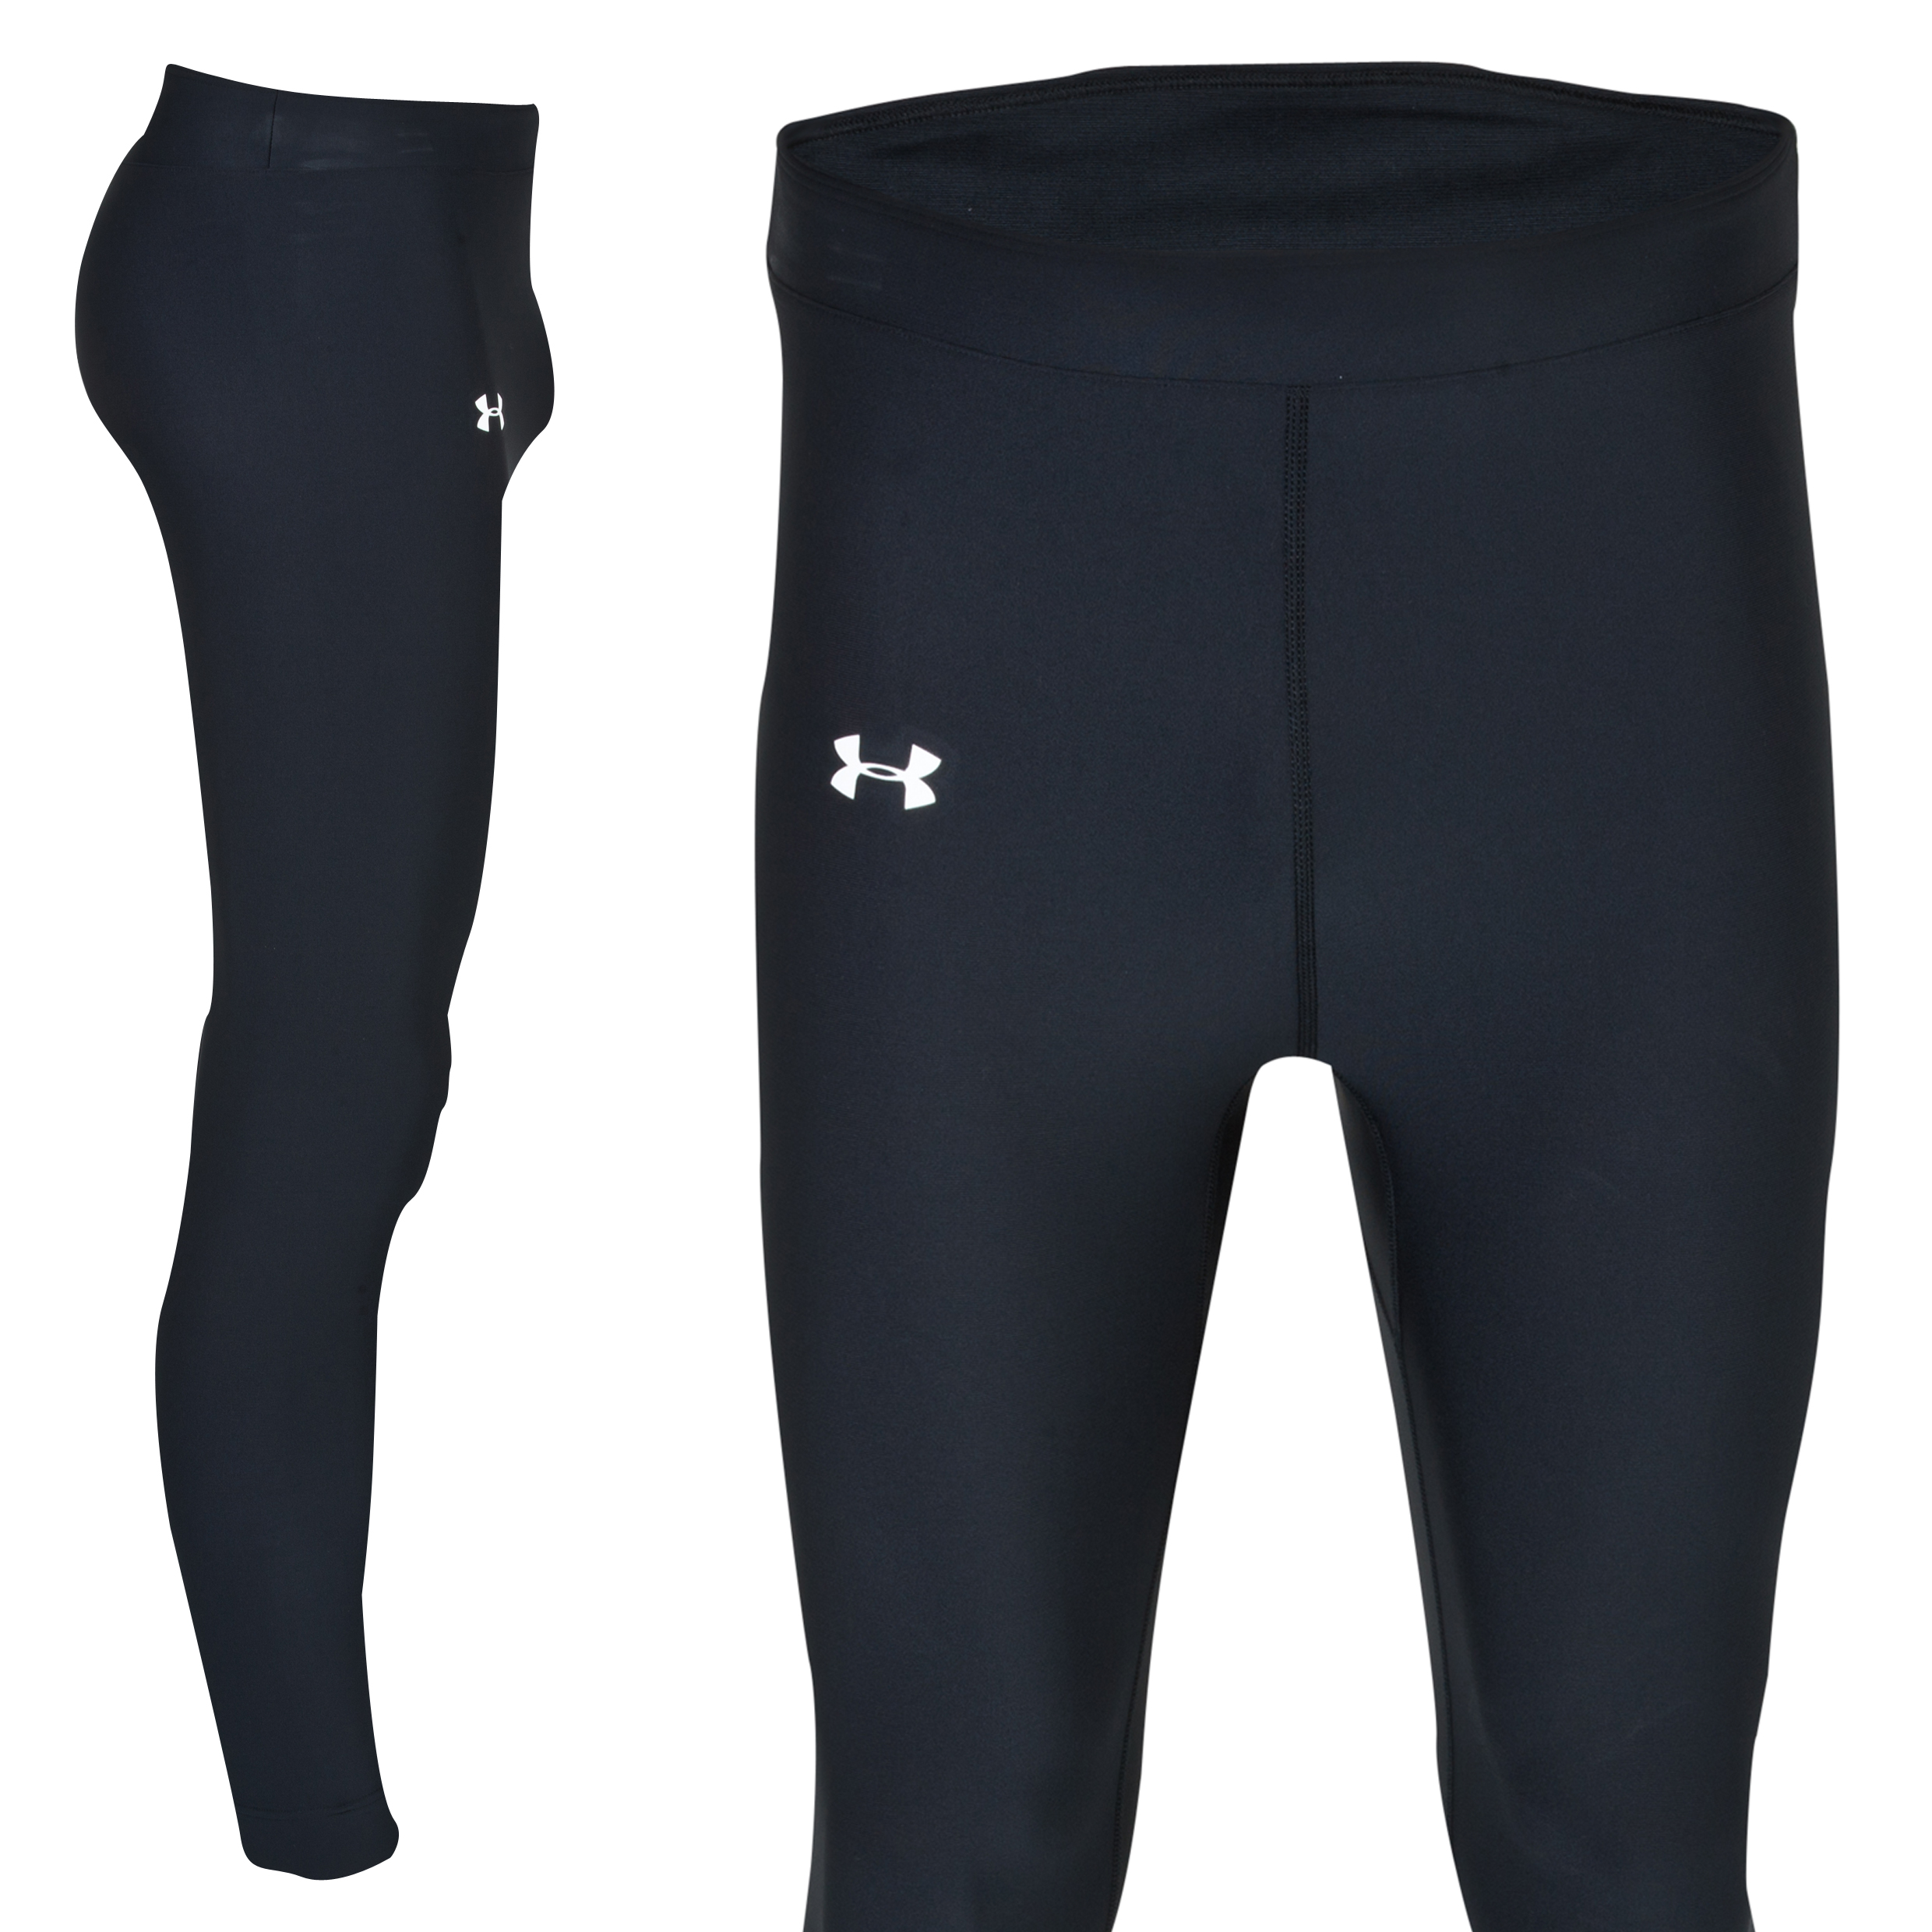 Under Armour Evo Coldgear Base Layer Leggings Black